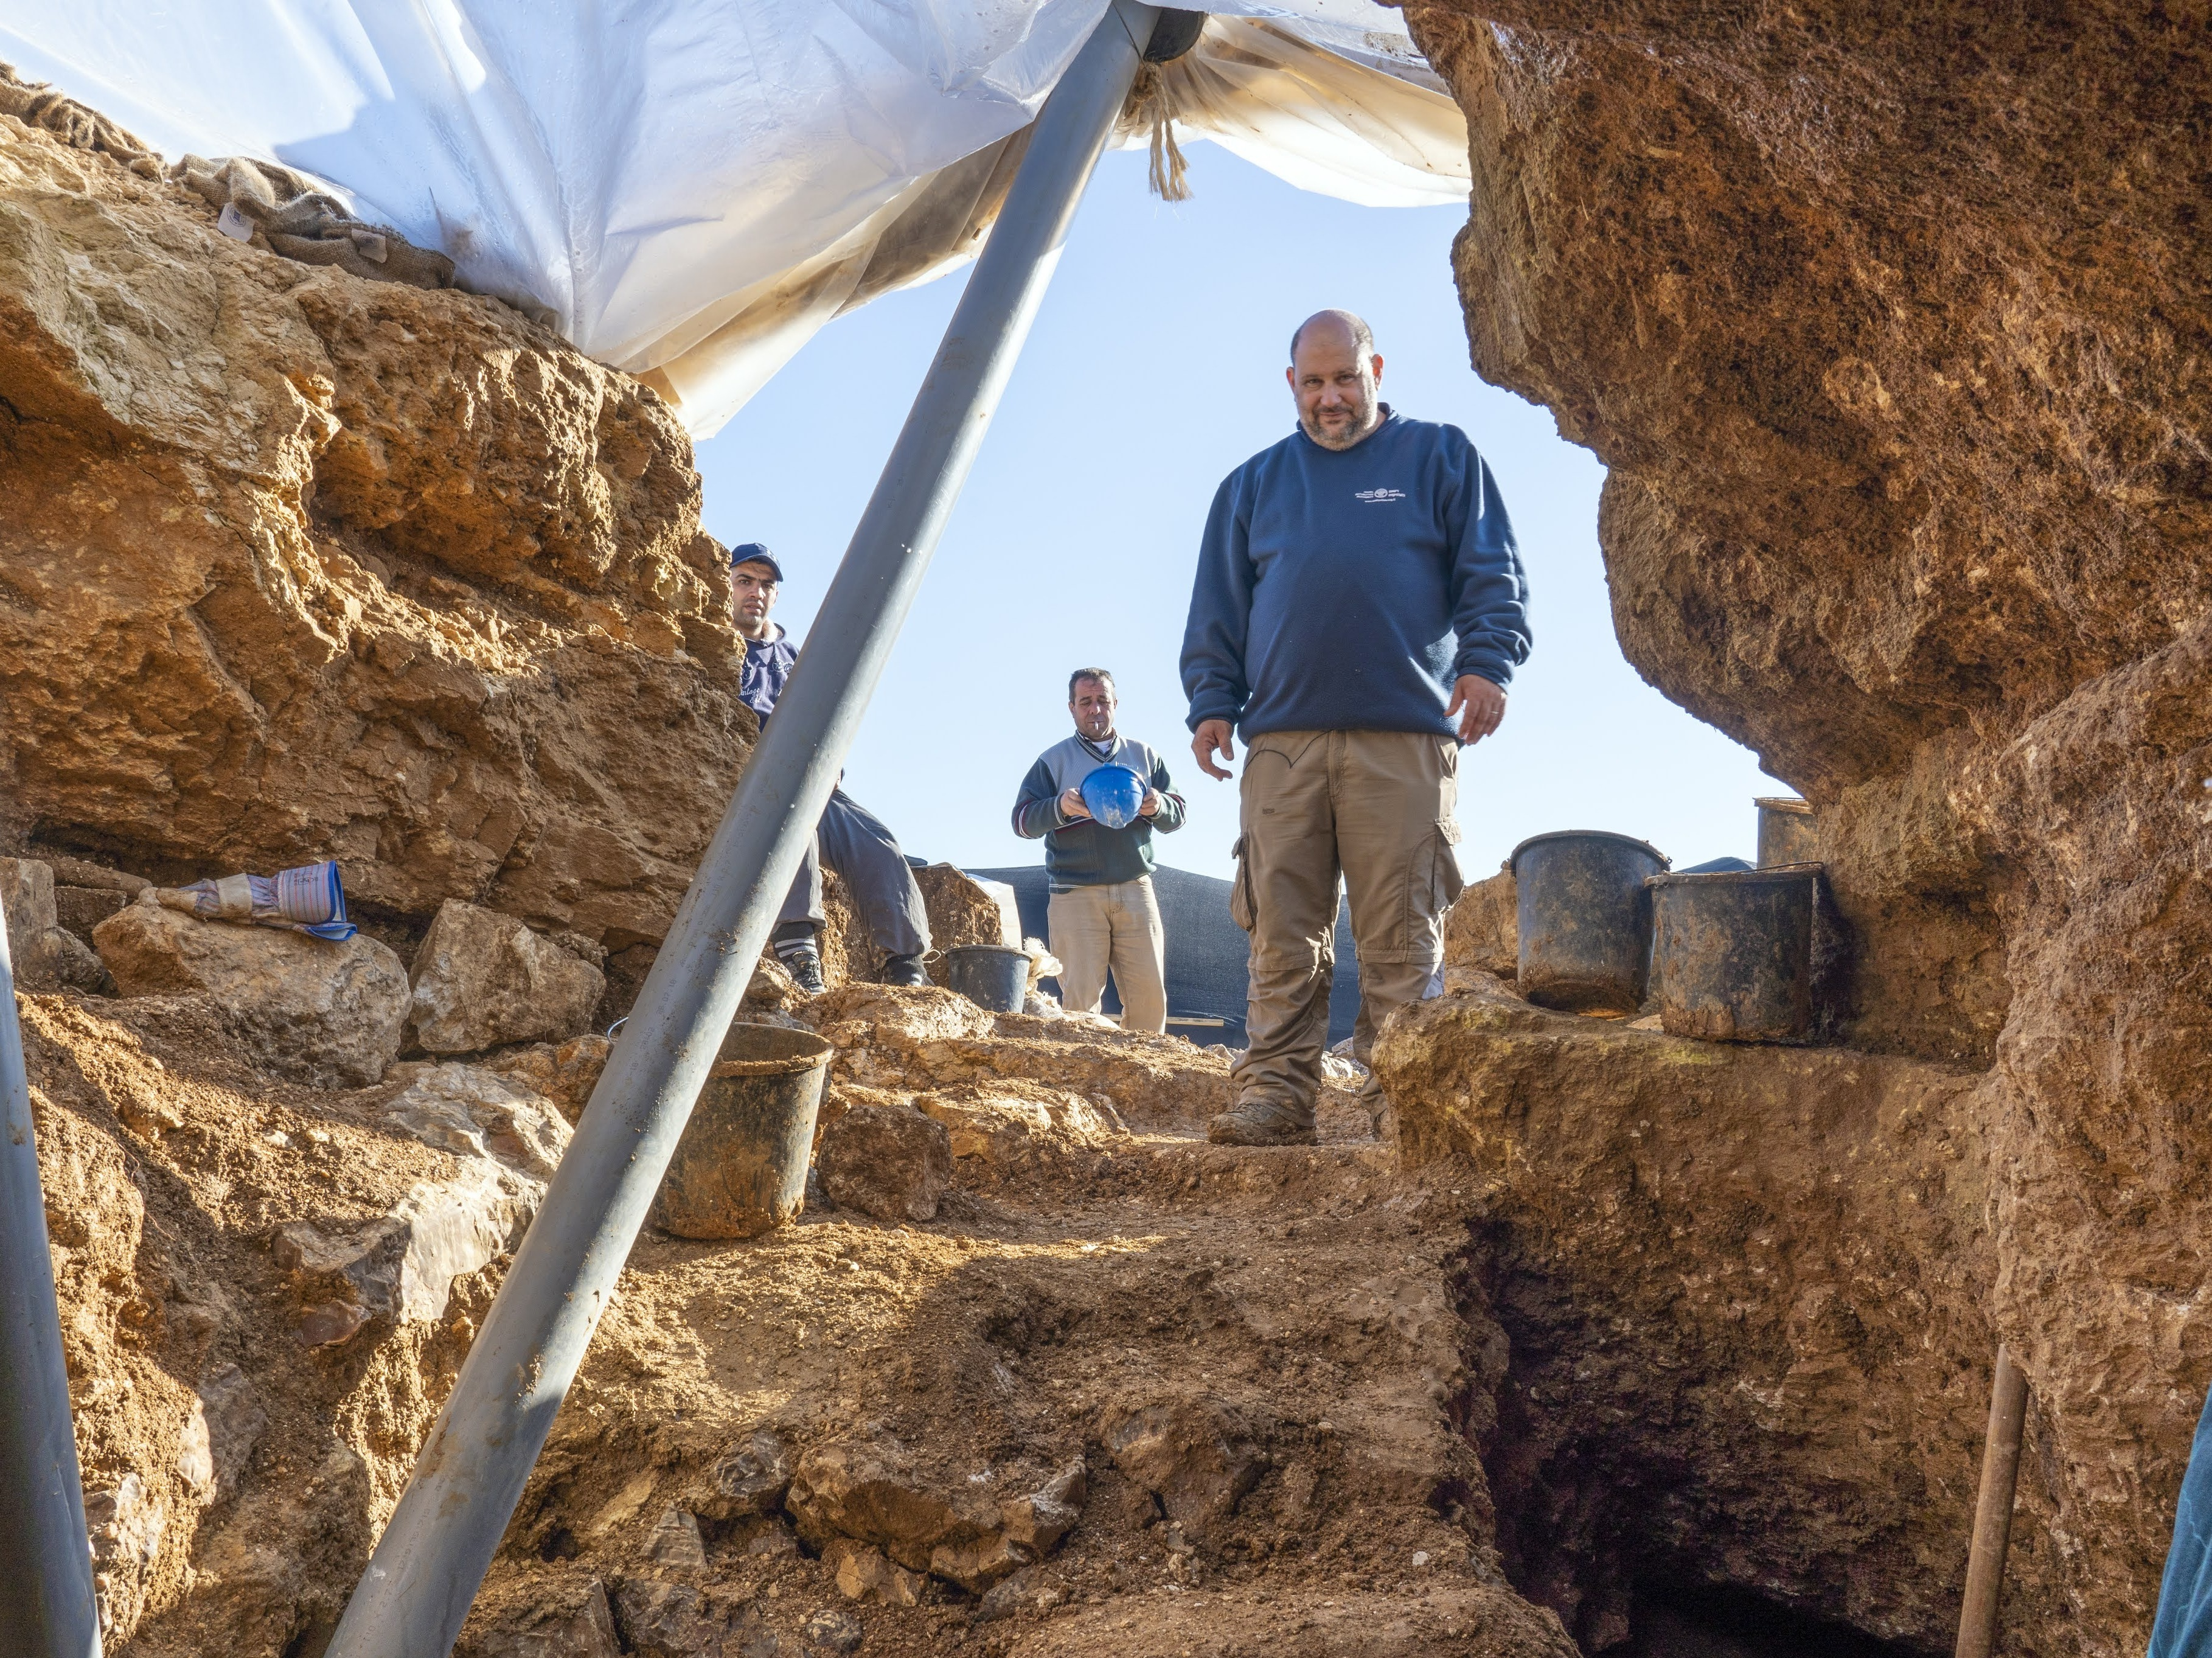 Nathan Ben-Ari, Israel Antiquities Authority archaeologist at the Excavation Site.